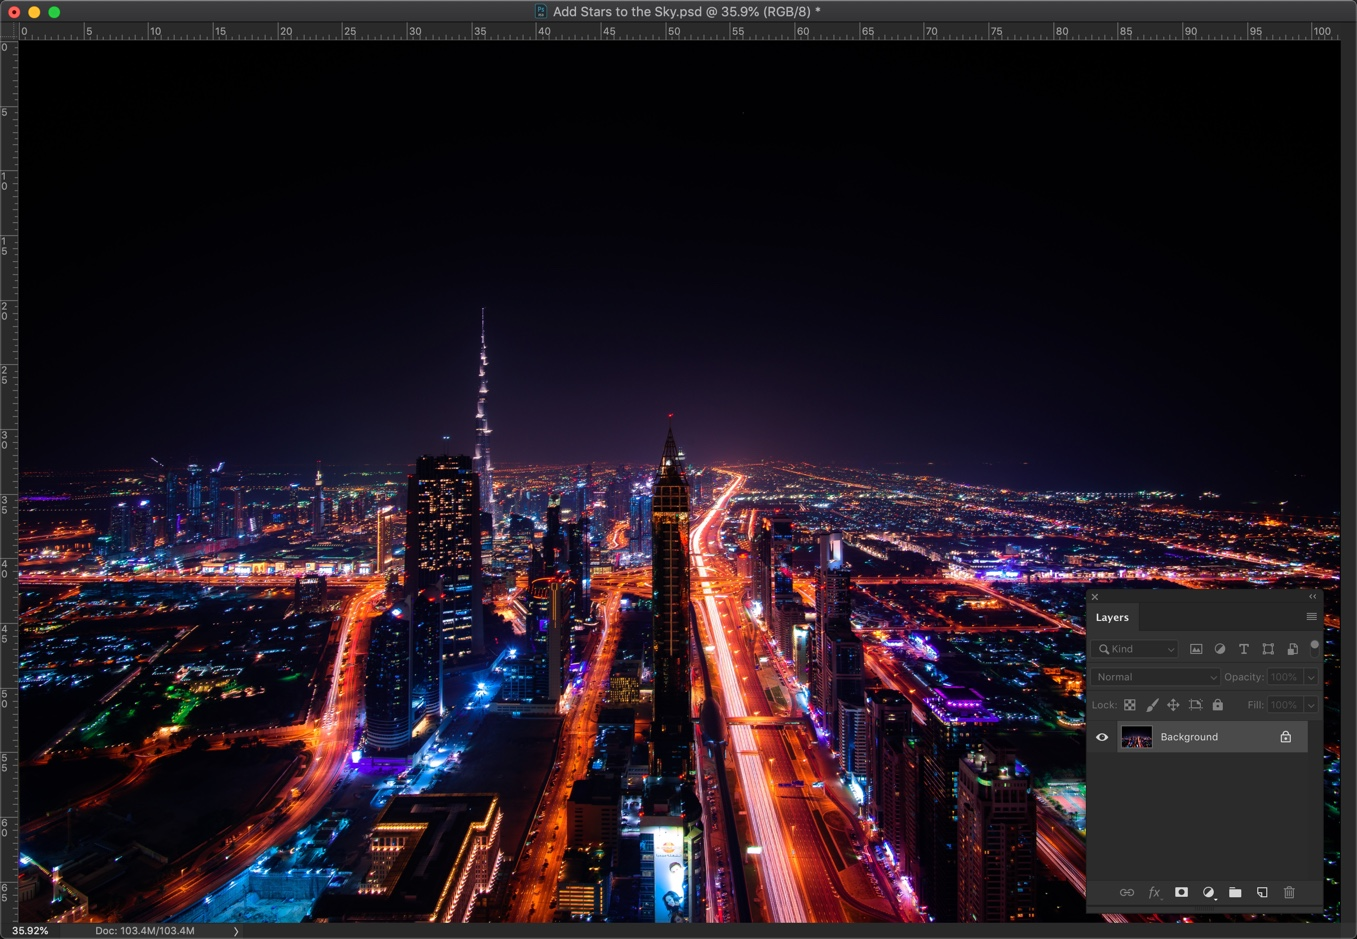 1 - How to add stars to the sky in Photoshop